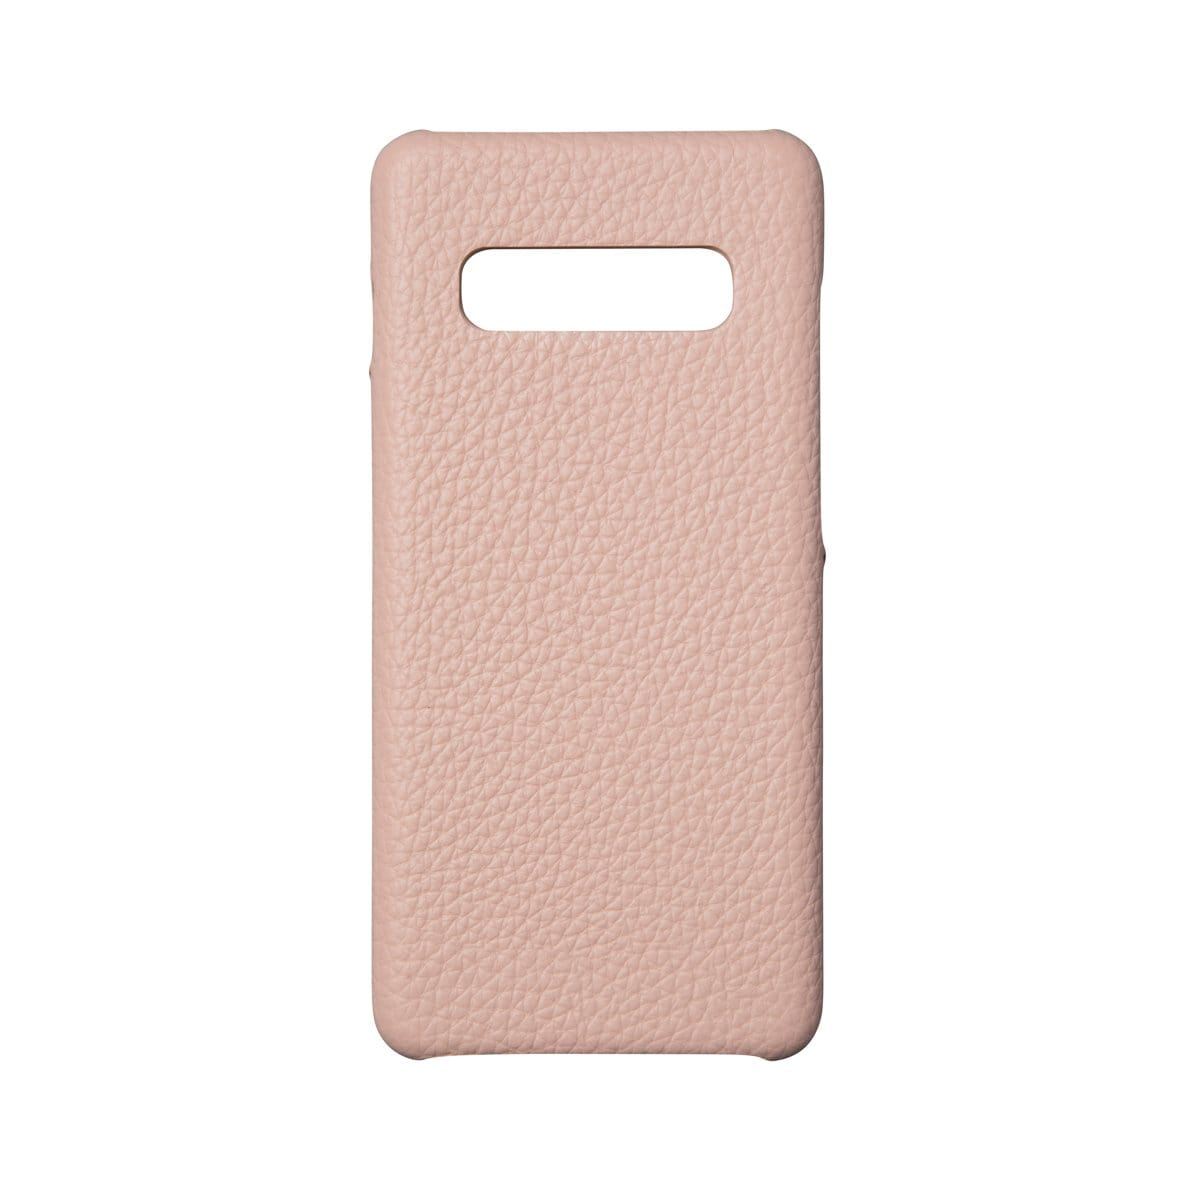 Blush Pink Phone Case (Samsung 10)